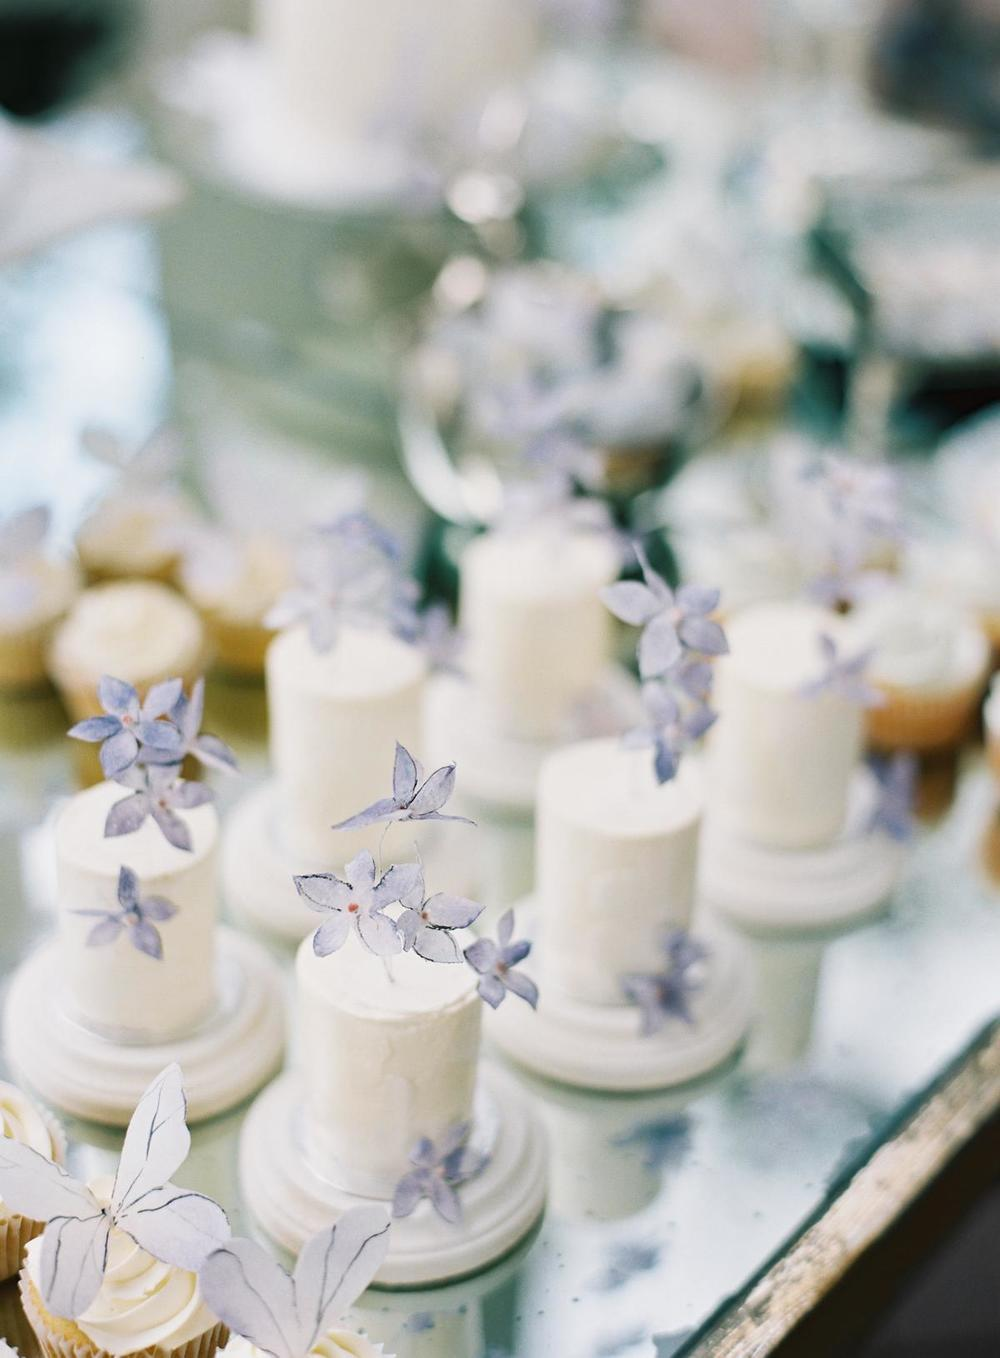 Single serving mini lakelets are garnished with delicate lavender floral.